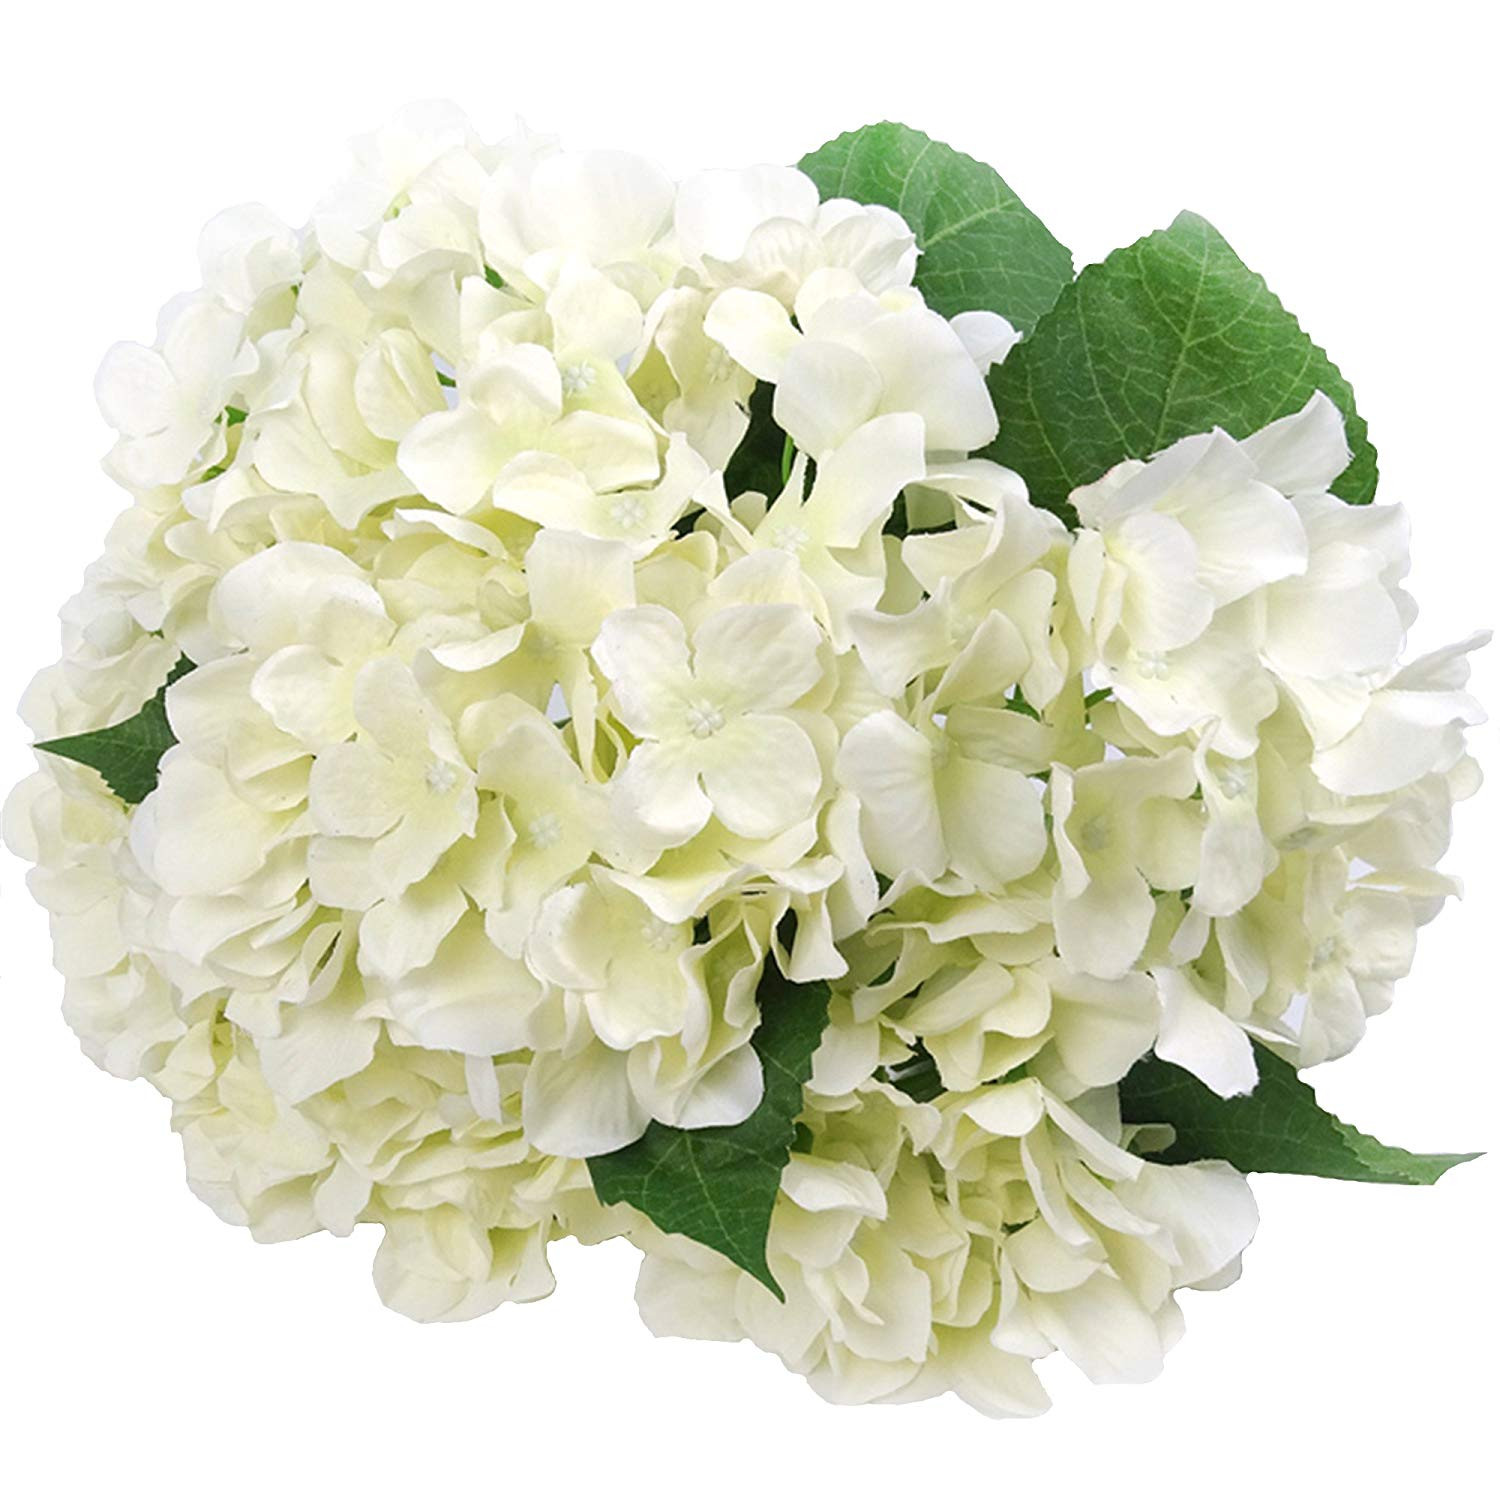 white flower vases bulk of amazon com felice arts artificial flowers 18 silk 7 big head regarding amazon com felice arts artificial flowers 18 silk 7 big head hydrangea bouquet for wedding room home hotel party decoration 1 cream home kitchen